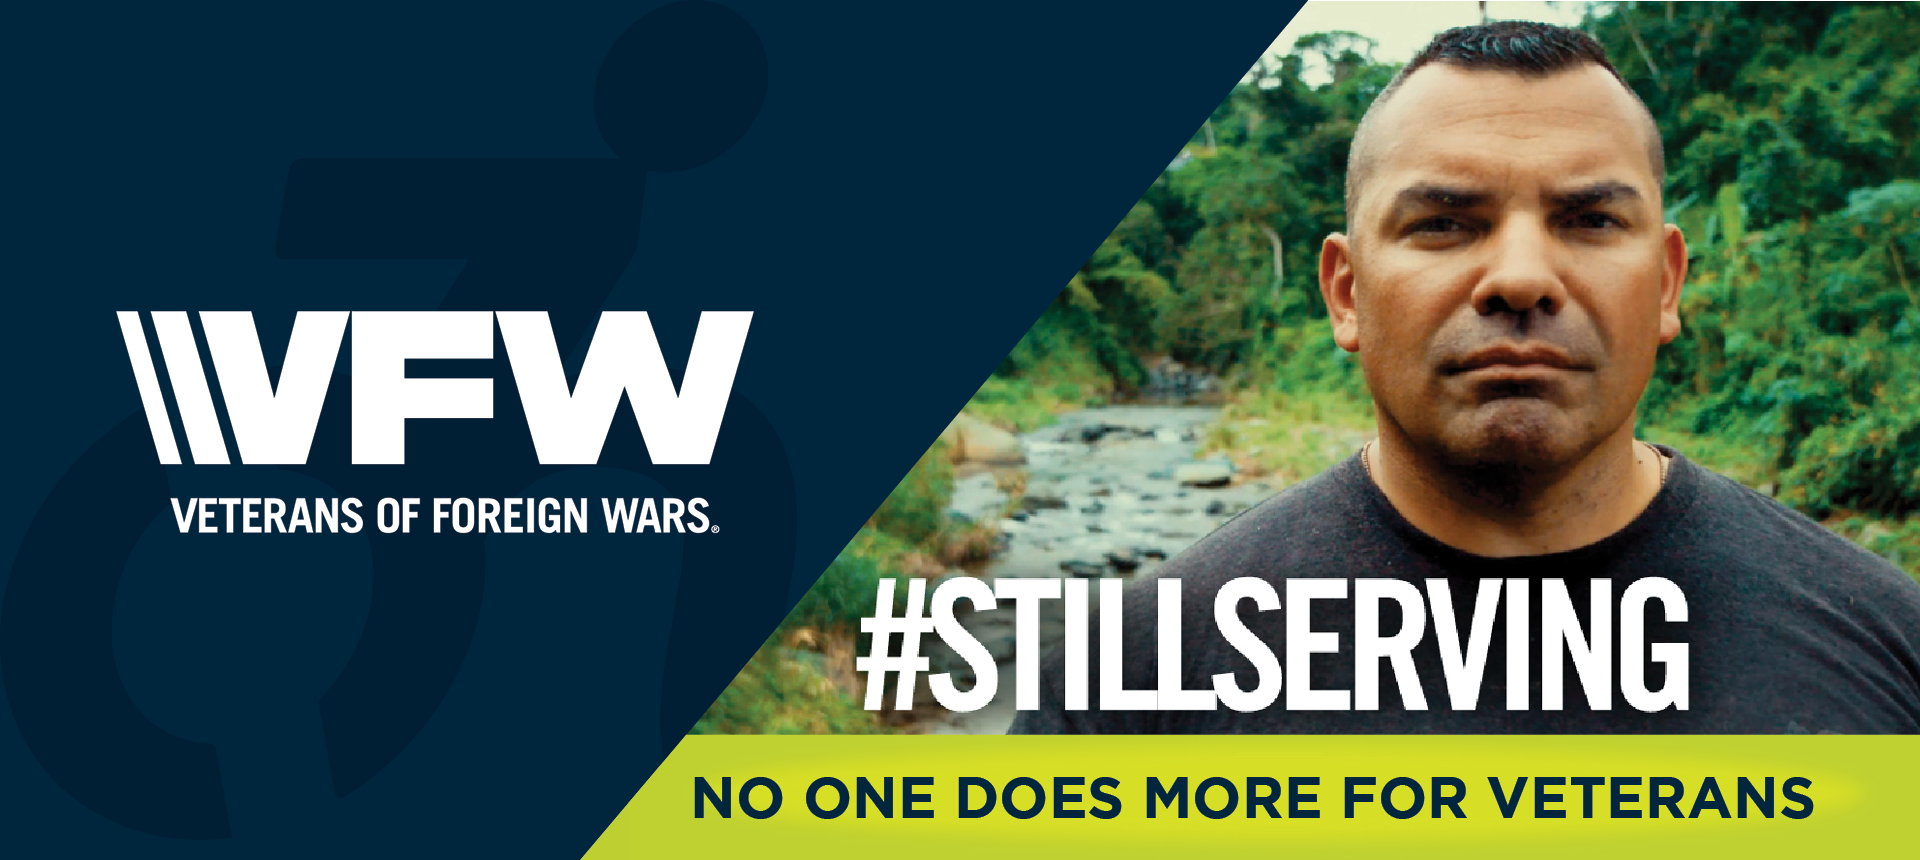 On left side of image, the Veterans of Foreign Wars of the United States logo. On right side of the image, a male soldier stands in front of a forest. The hashtag #STILLSERVING is superimposed over him. Underneath, the image reads: NO ONE DOES MORE FOR VETERANS.